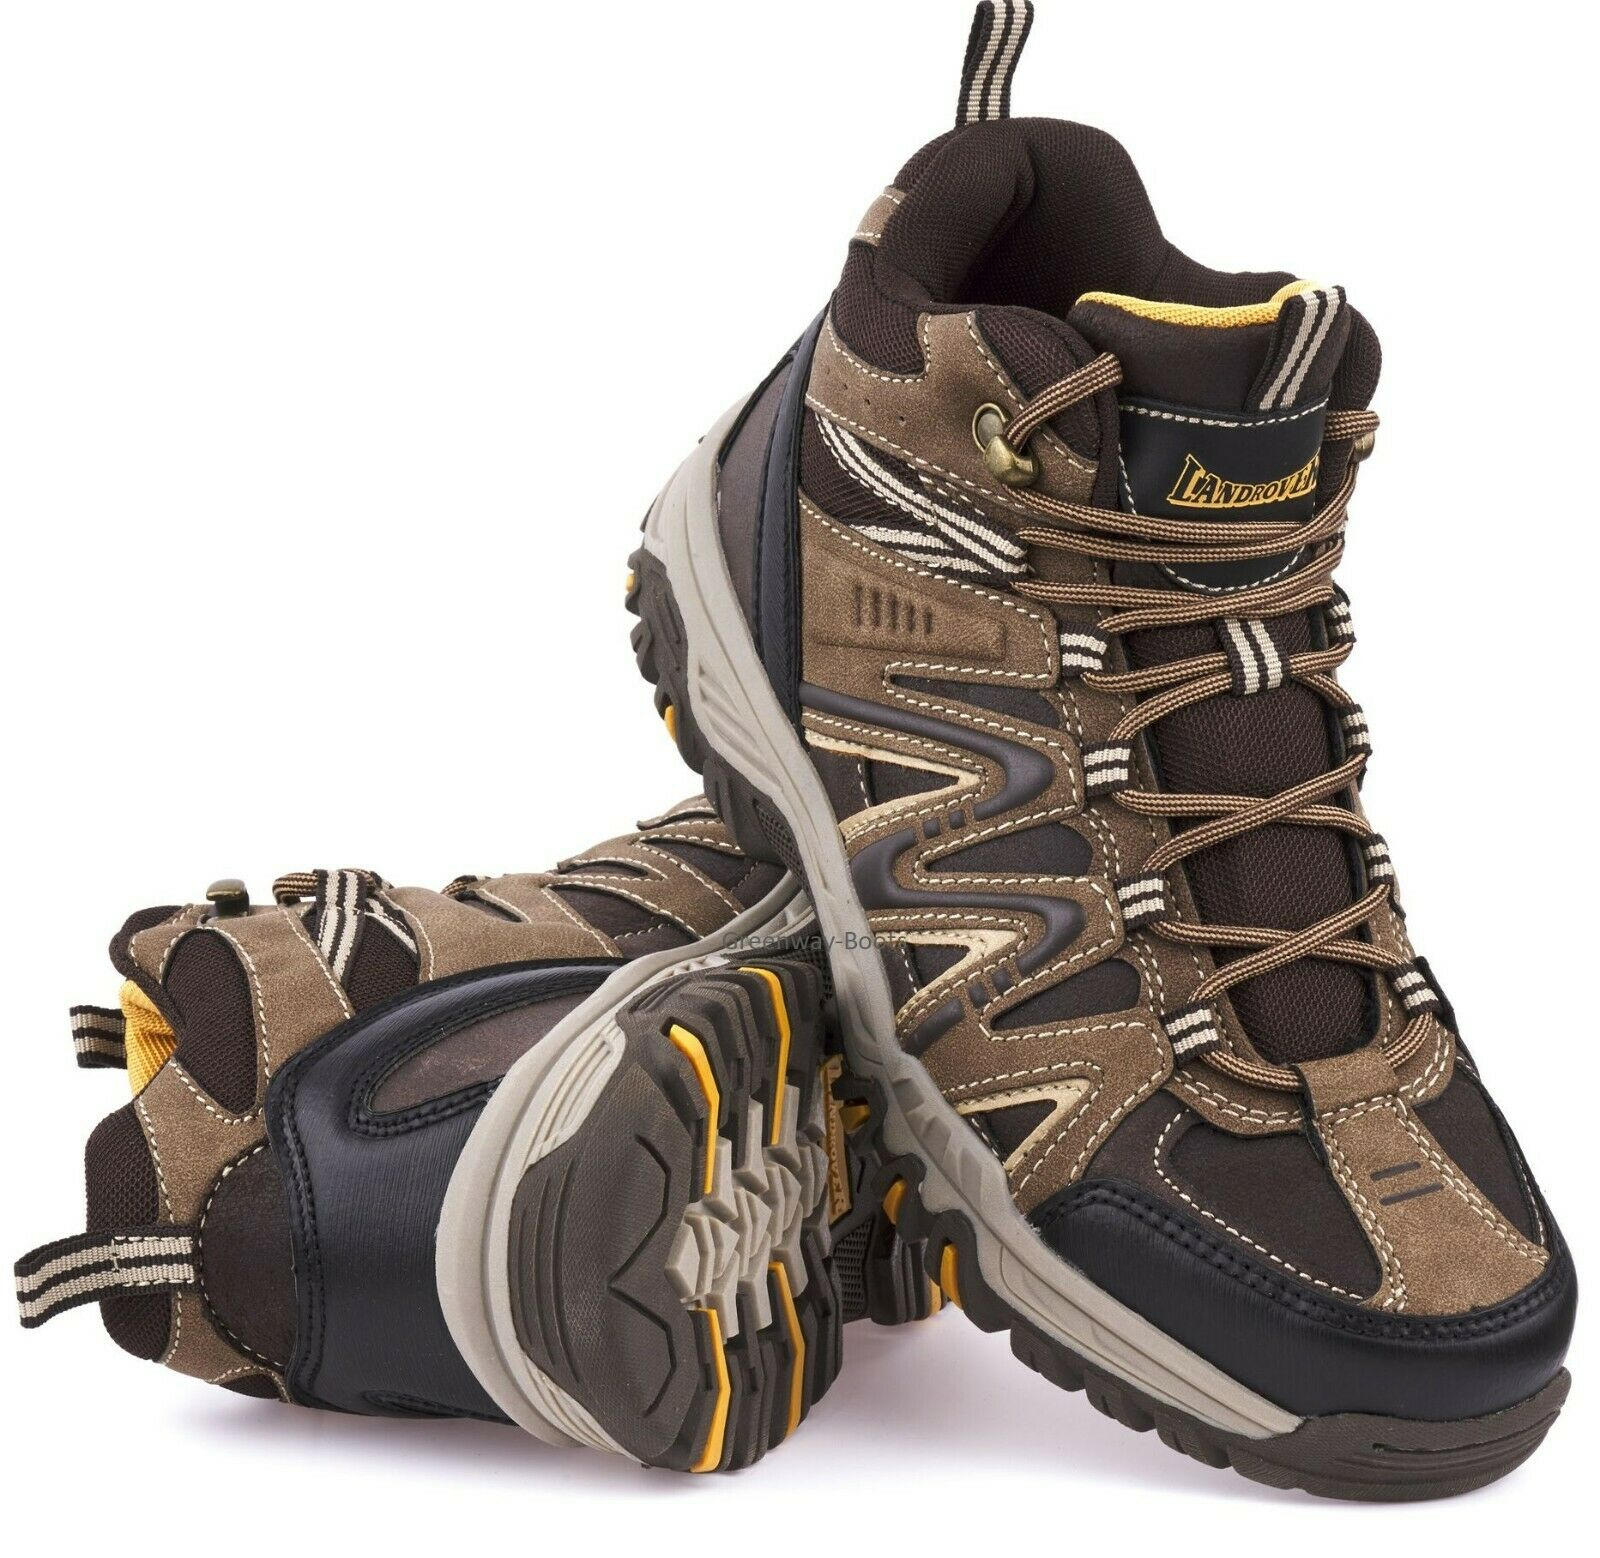 55ae6d4aabd MENS HIKING WATER RESISTANT WALKING ANKLE TRAIL TREKKING TRAINERS SHOES  BOOTS SZ